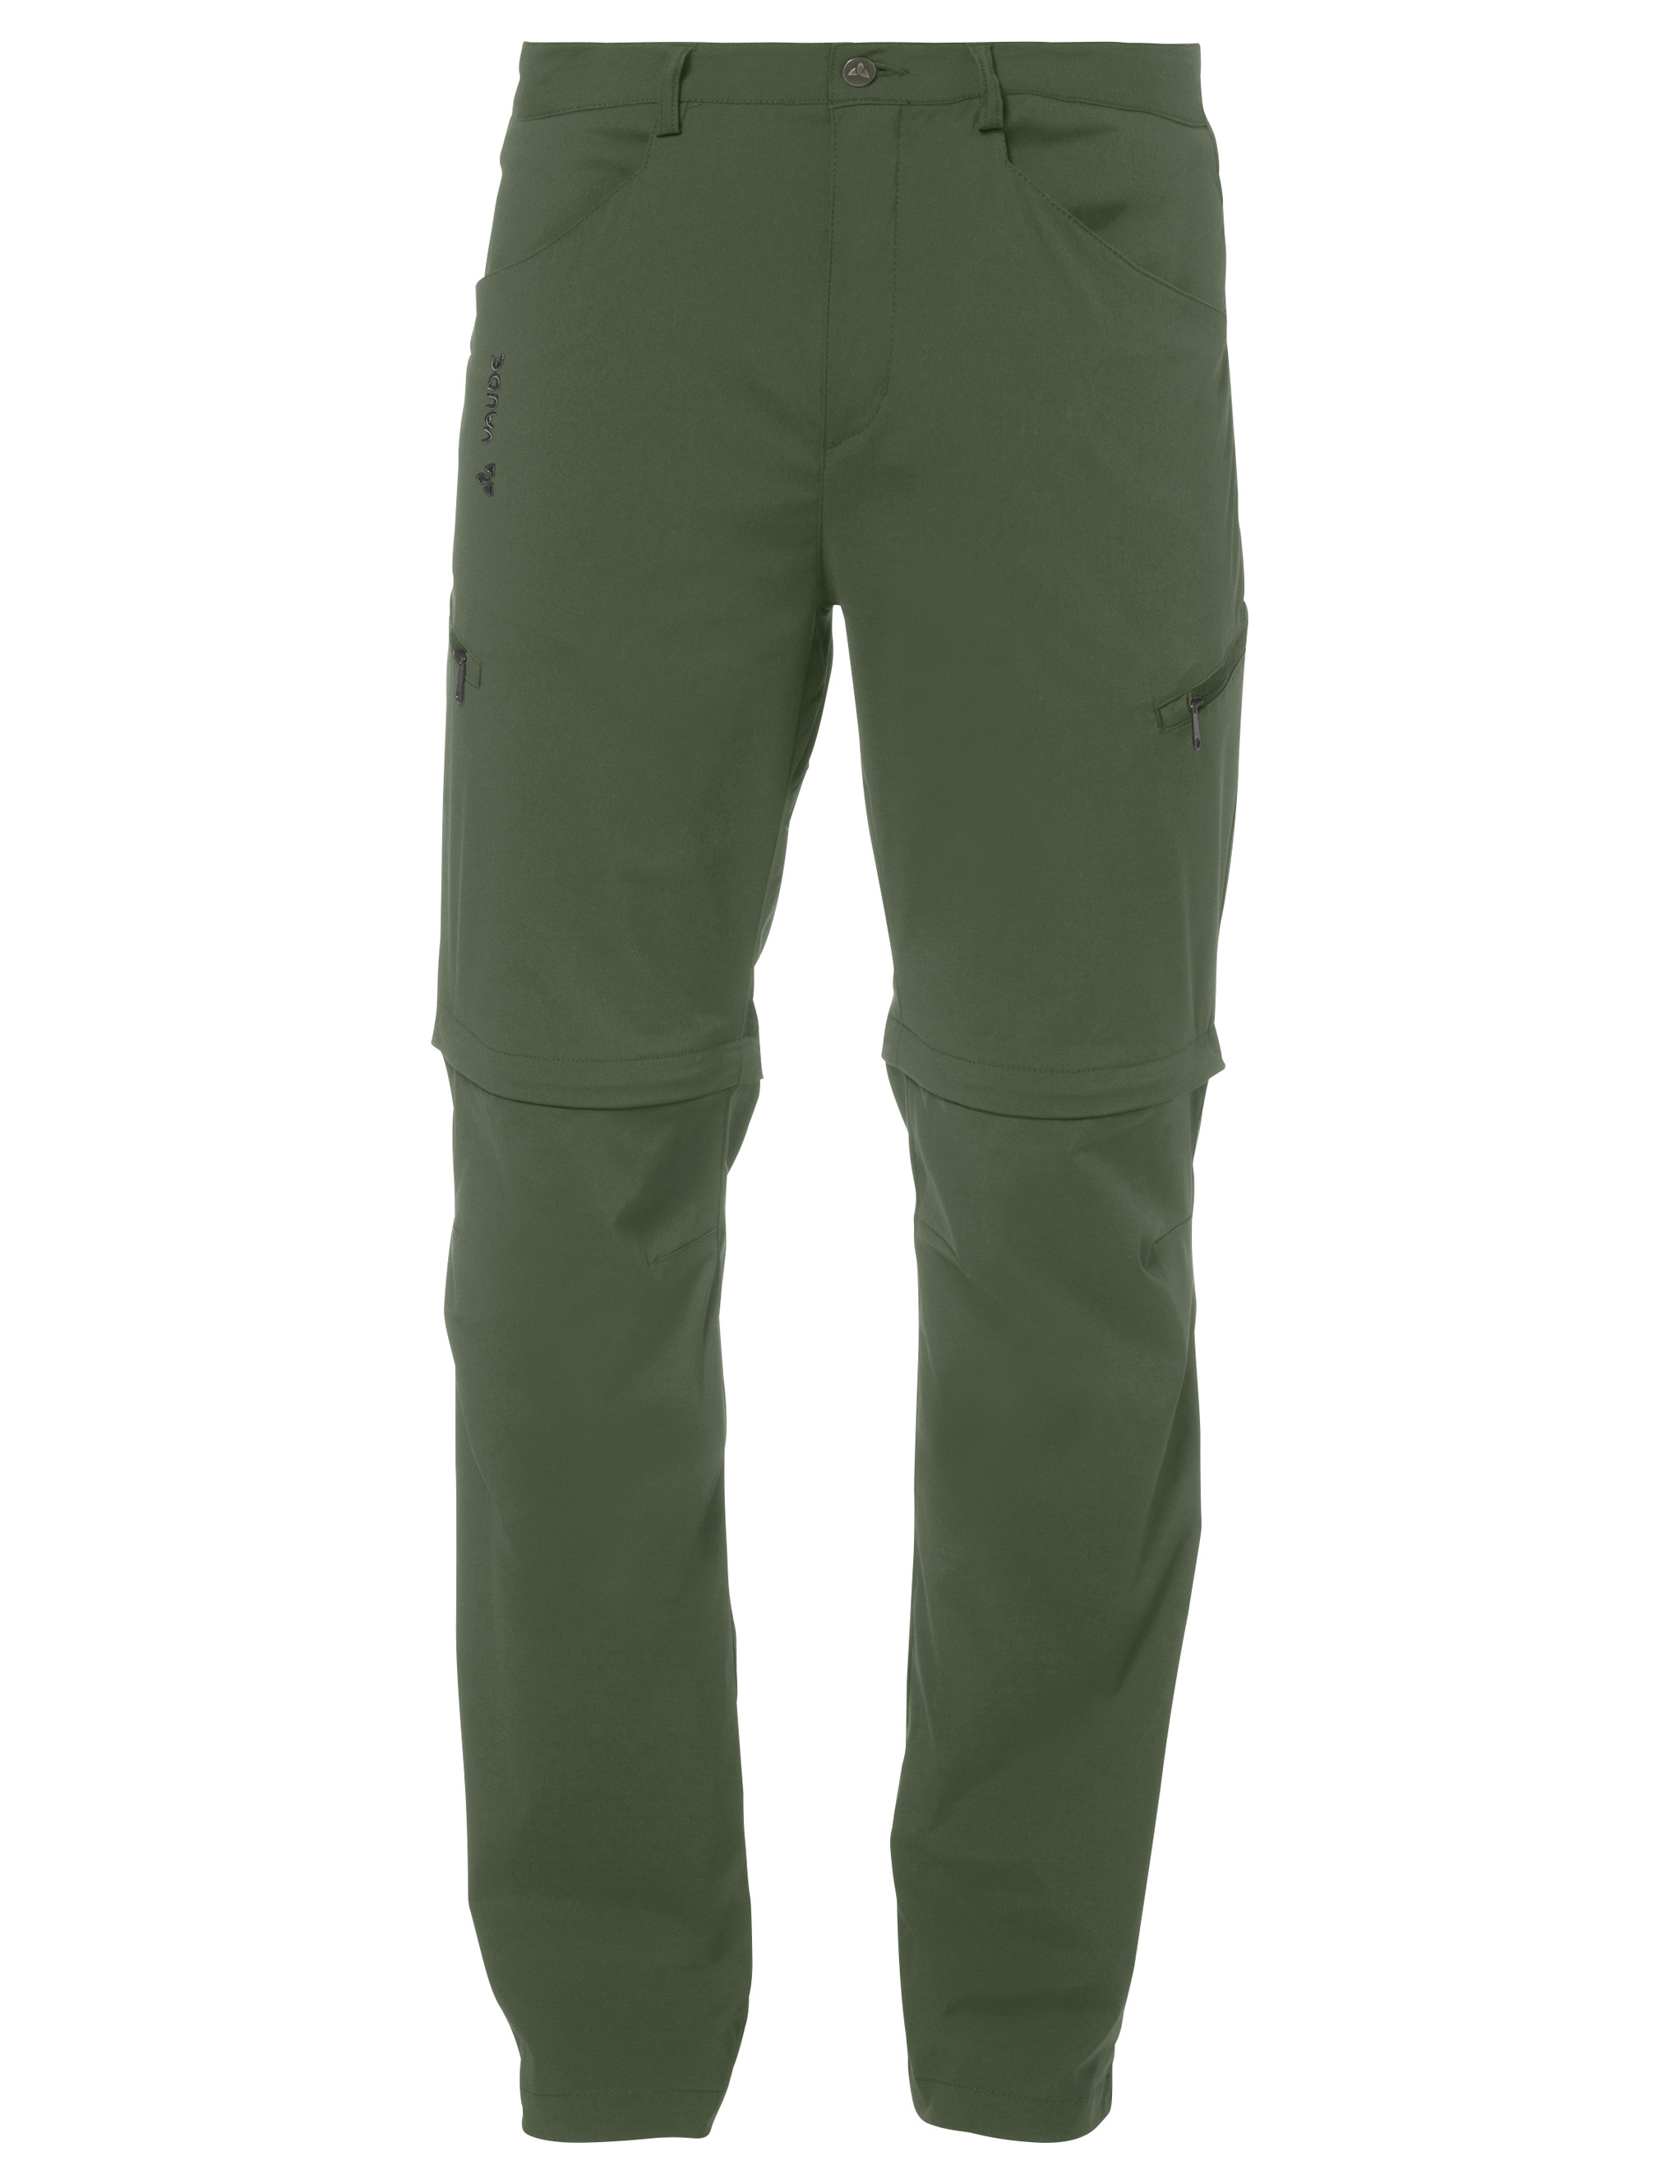 VAUDE Men´s Yaki ZO Pants cedar wood Größe S - schneider-sports